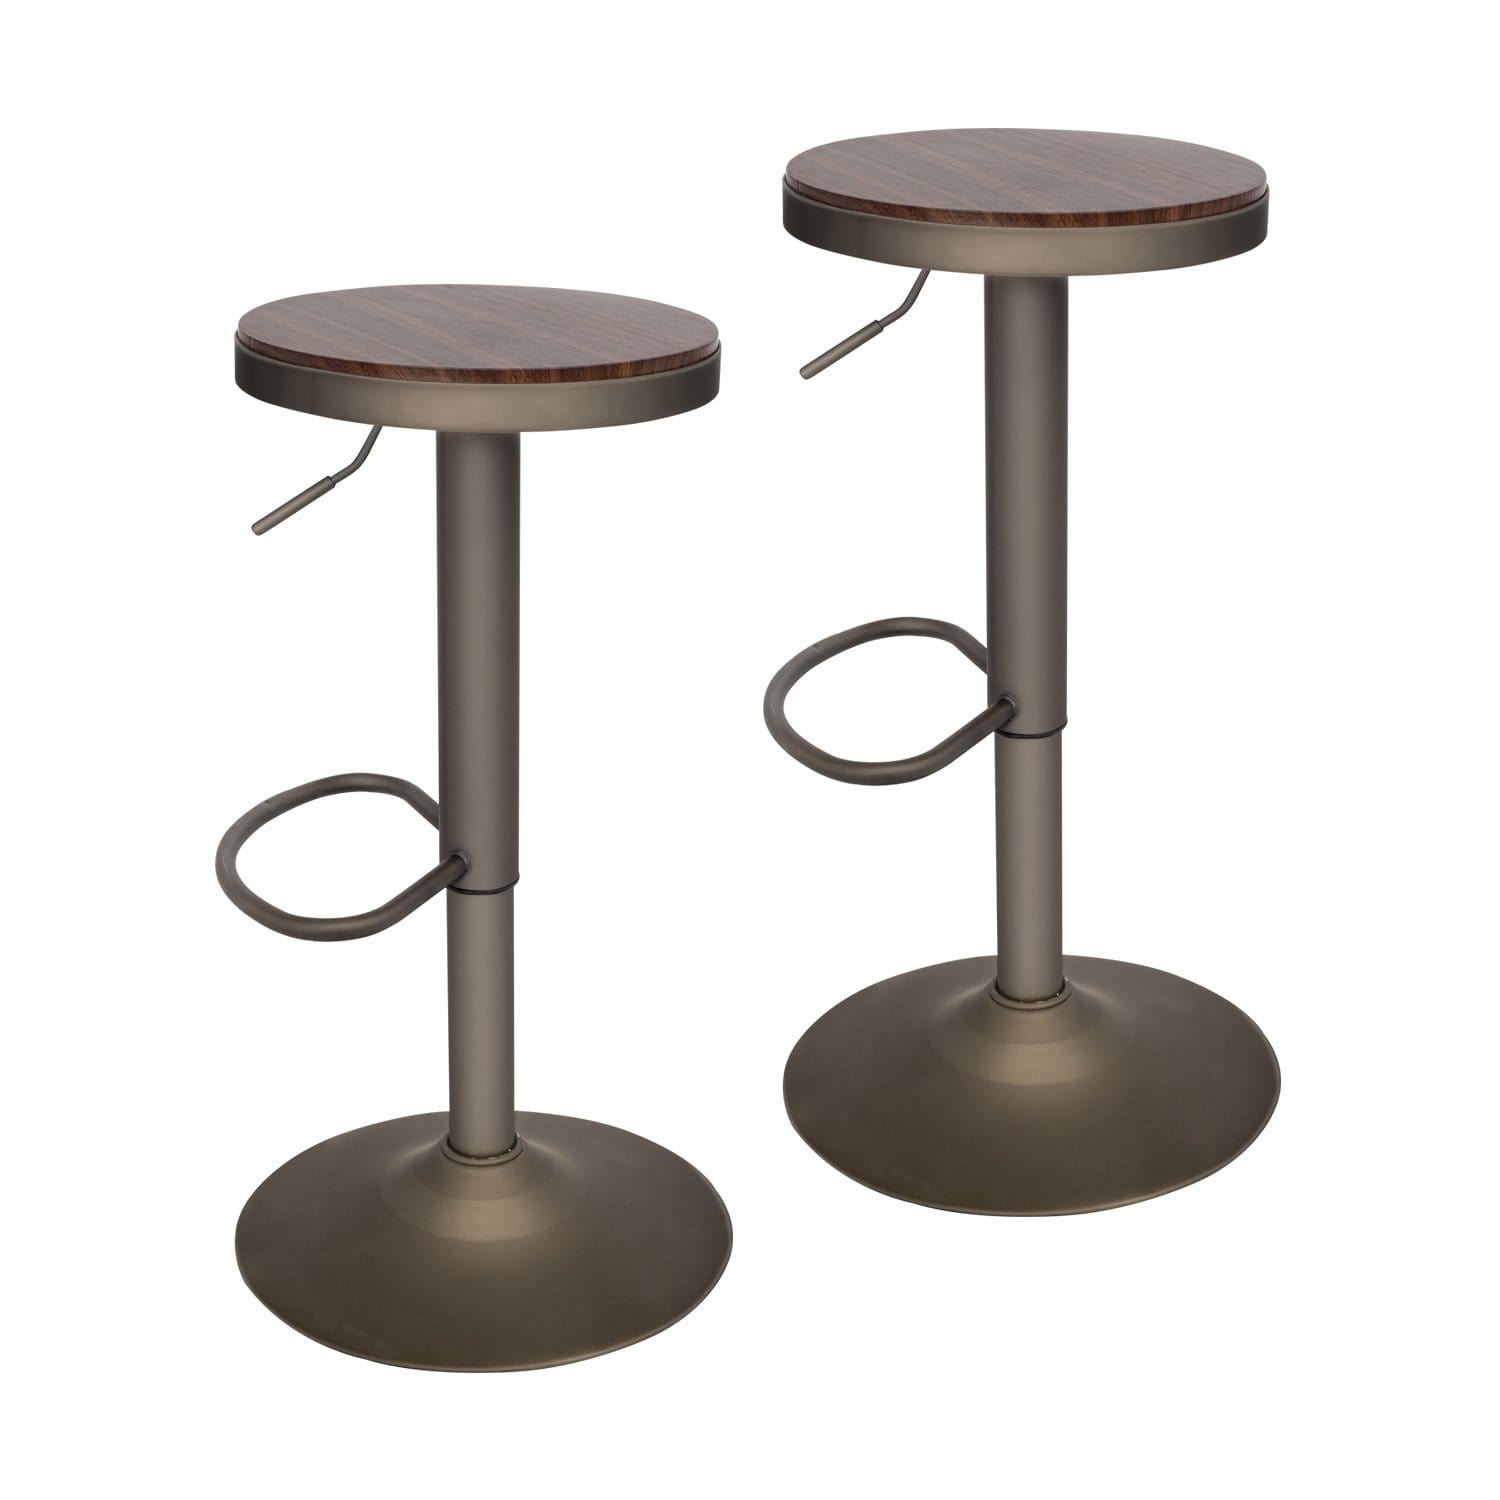 PULUOMIS 360 Degree Swivel Adjustable Bar Stool